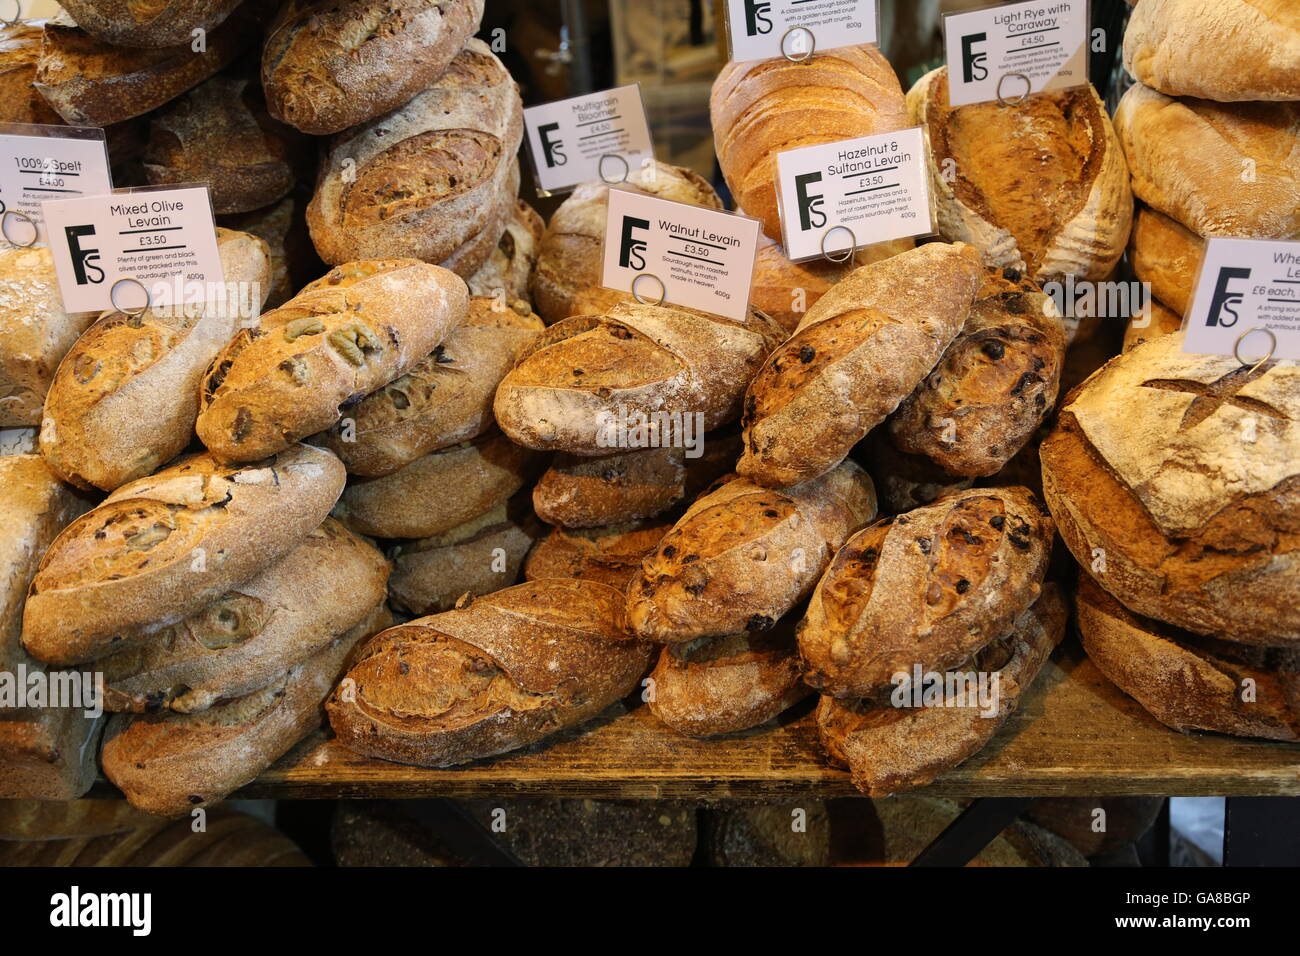 London Bread Stock Photos & London Bread Stock Images - Alamy